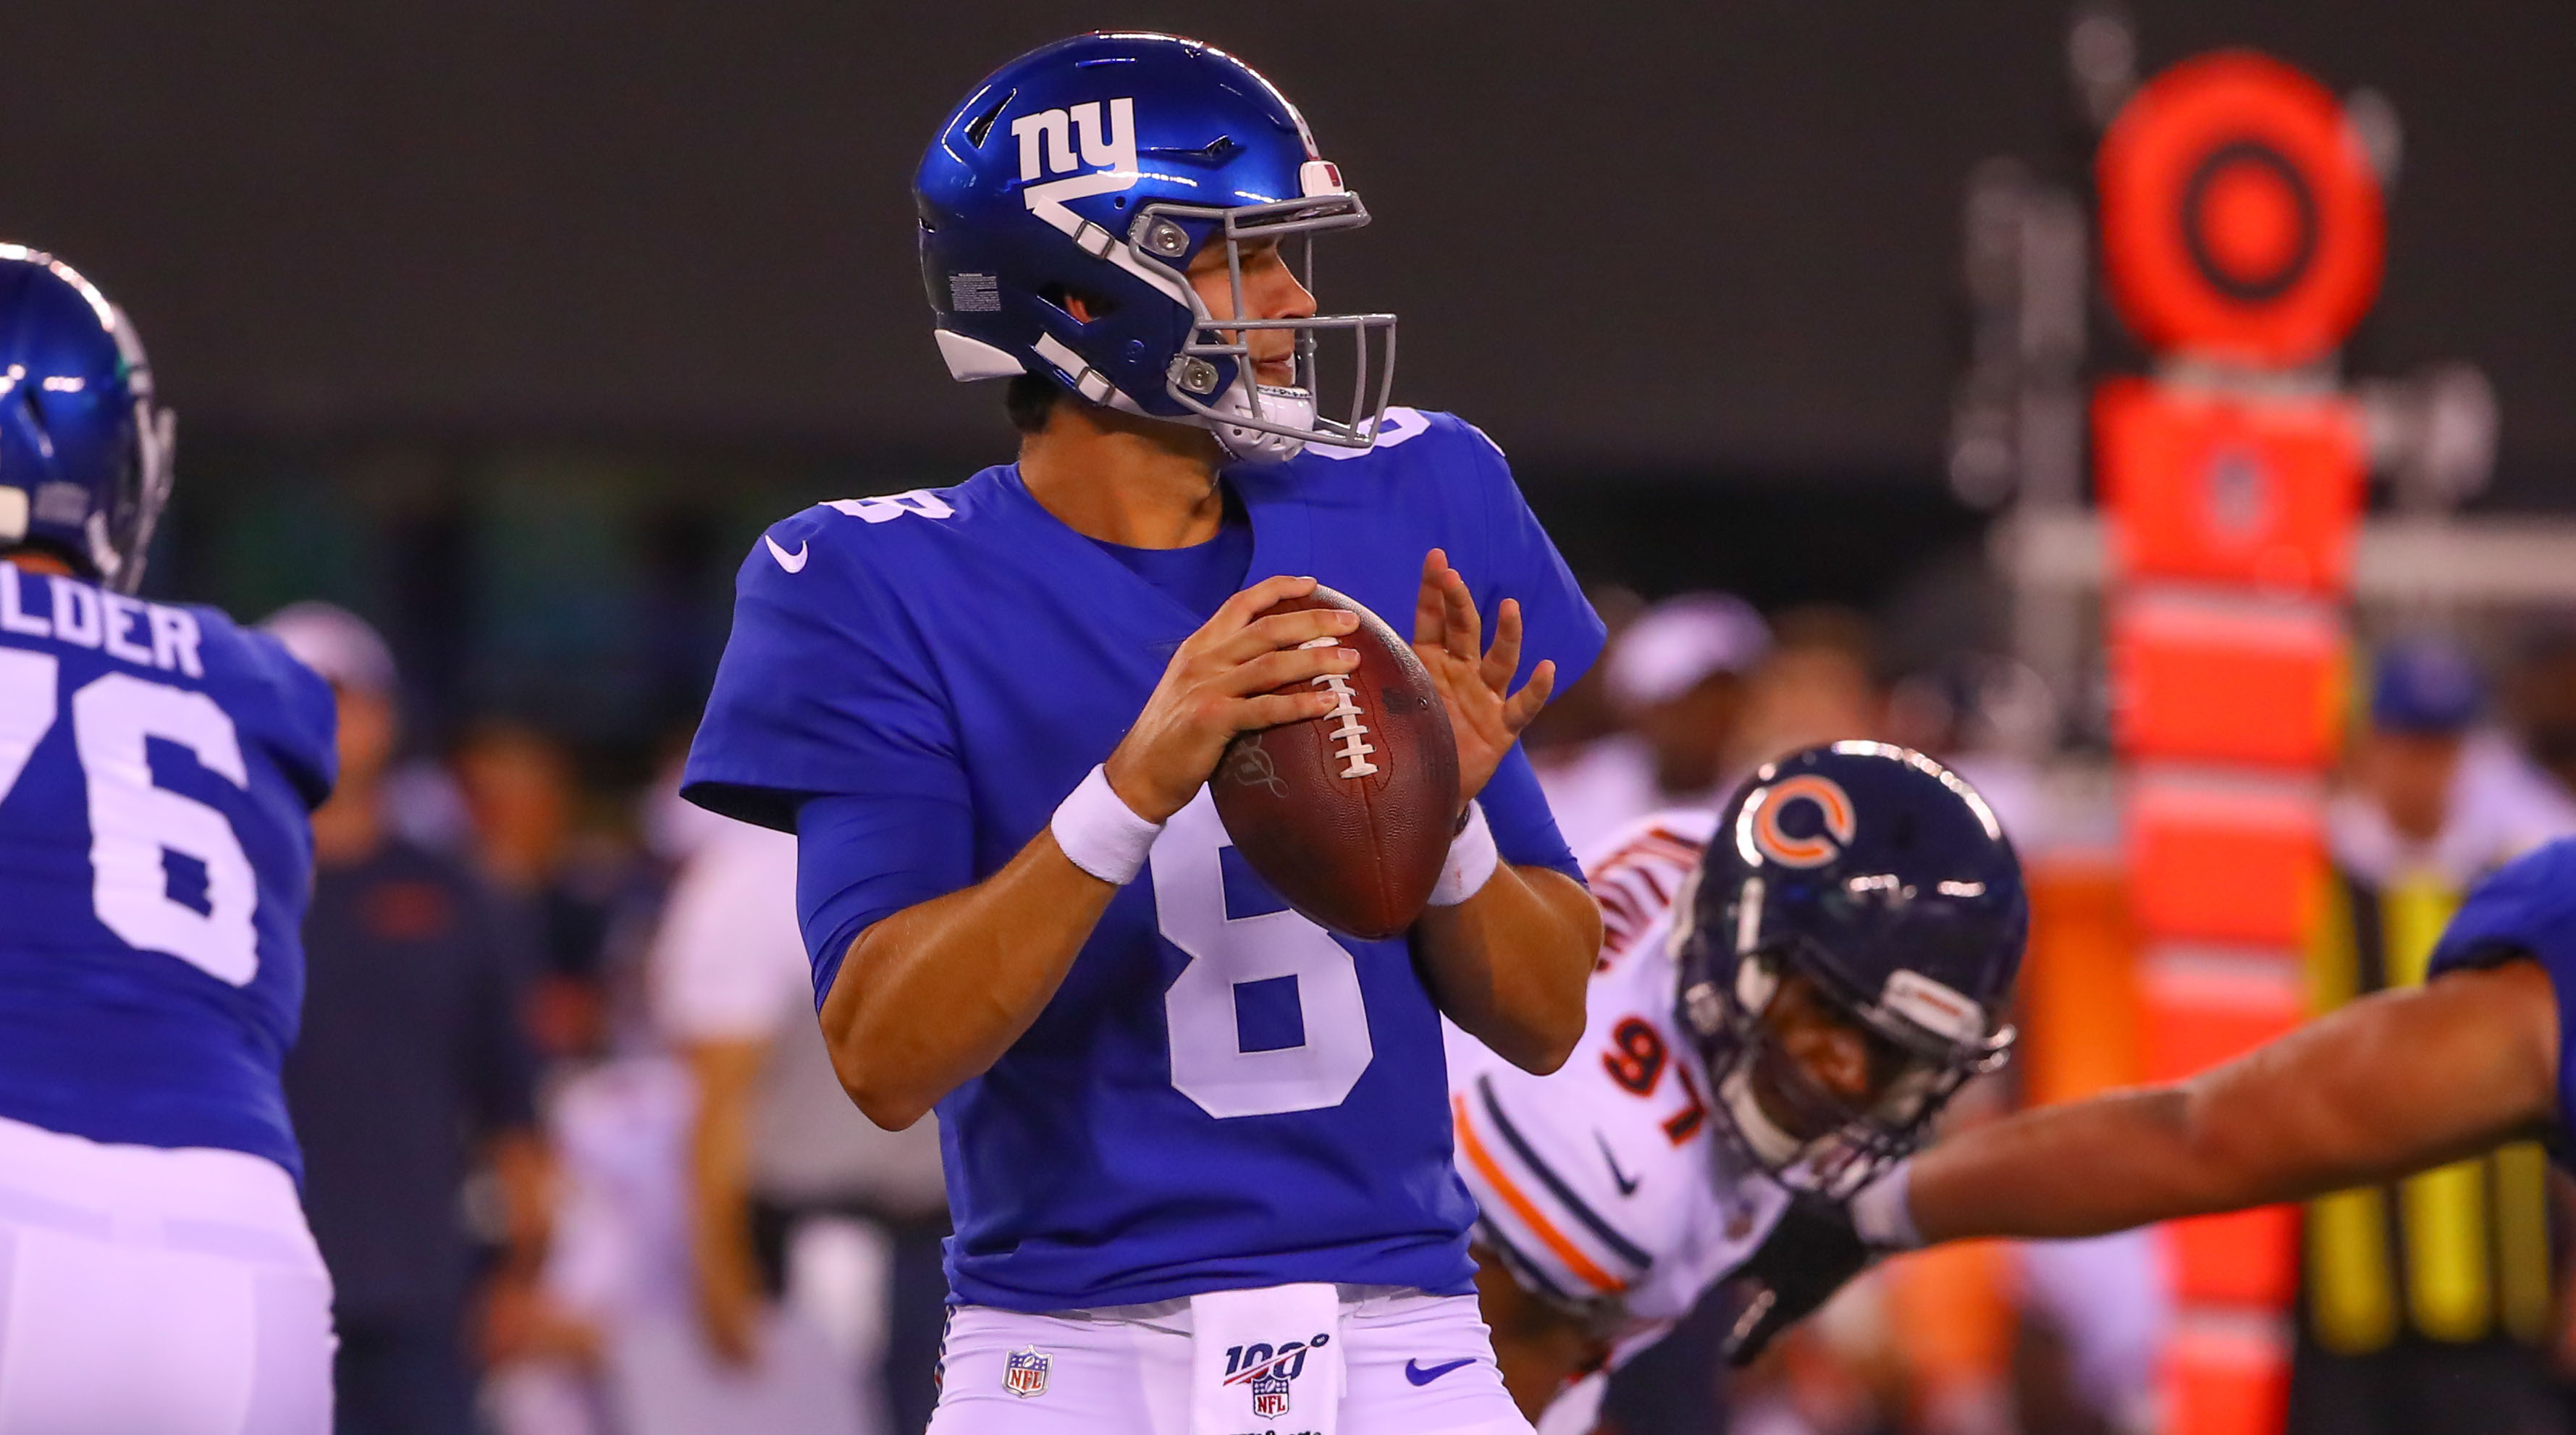 NFL: AUG 16 Preseason - Bears at Giants